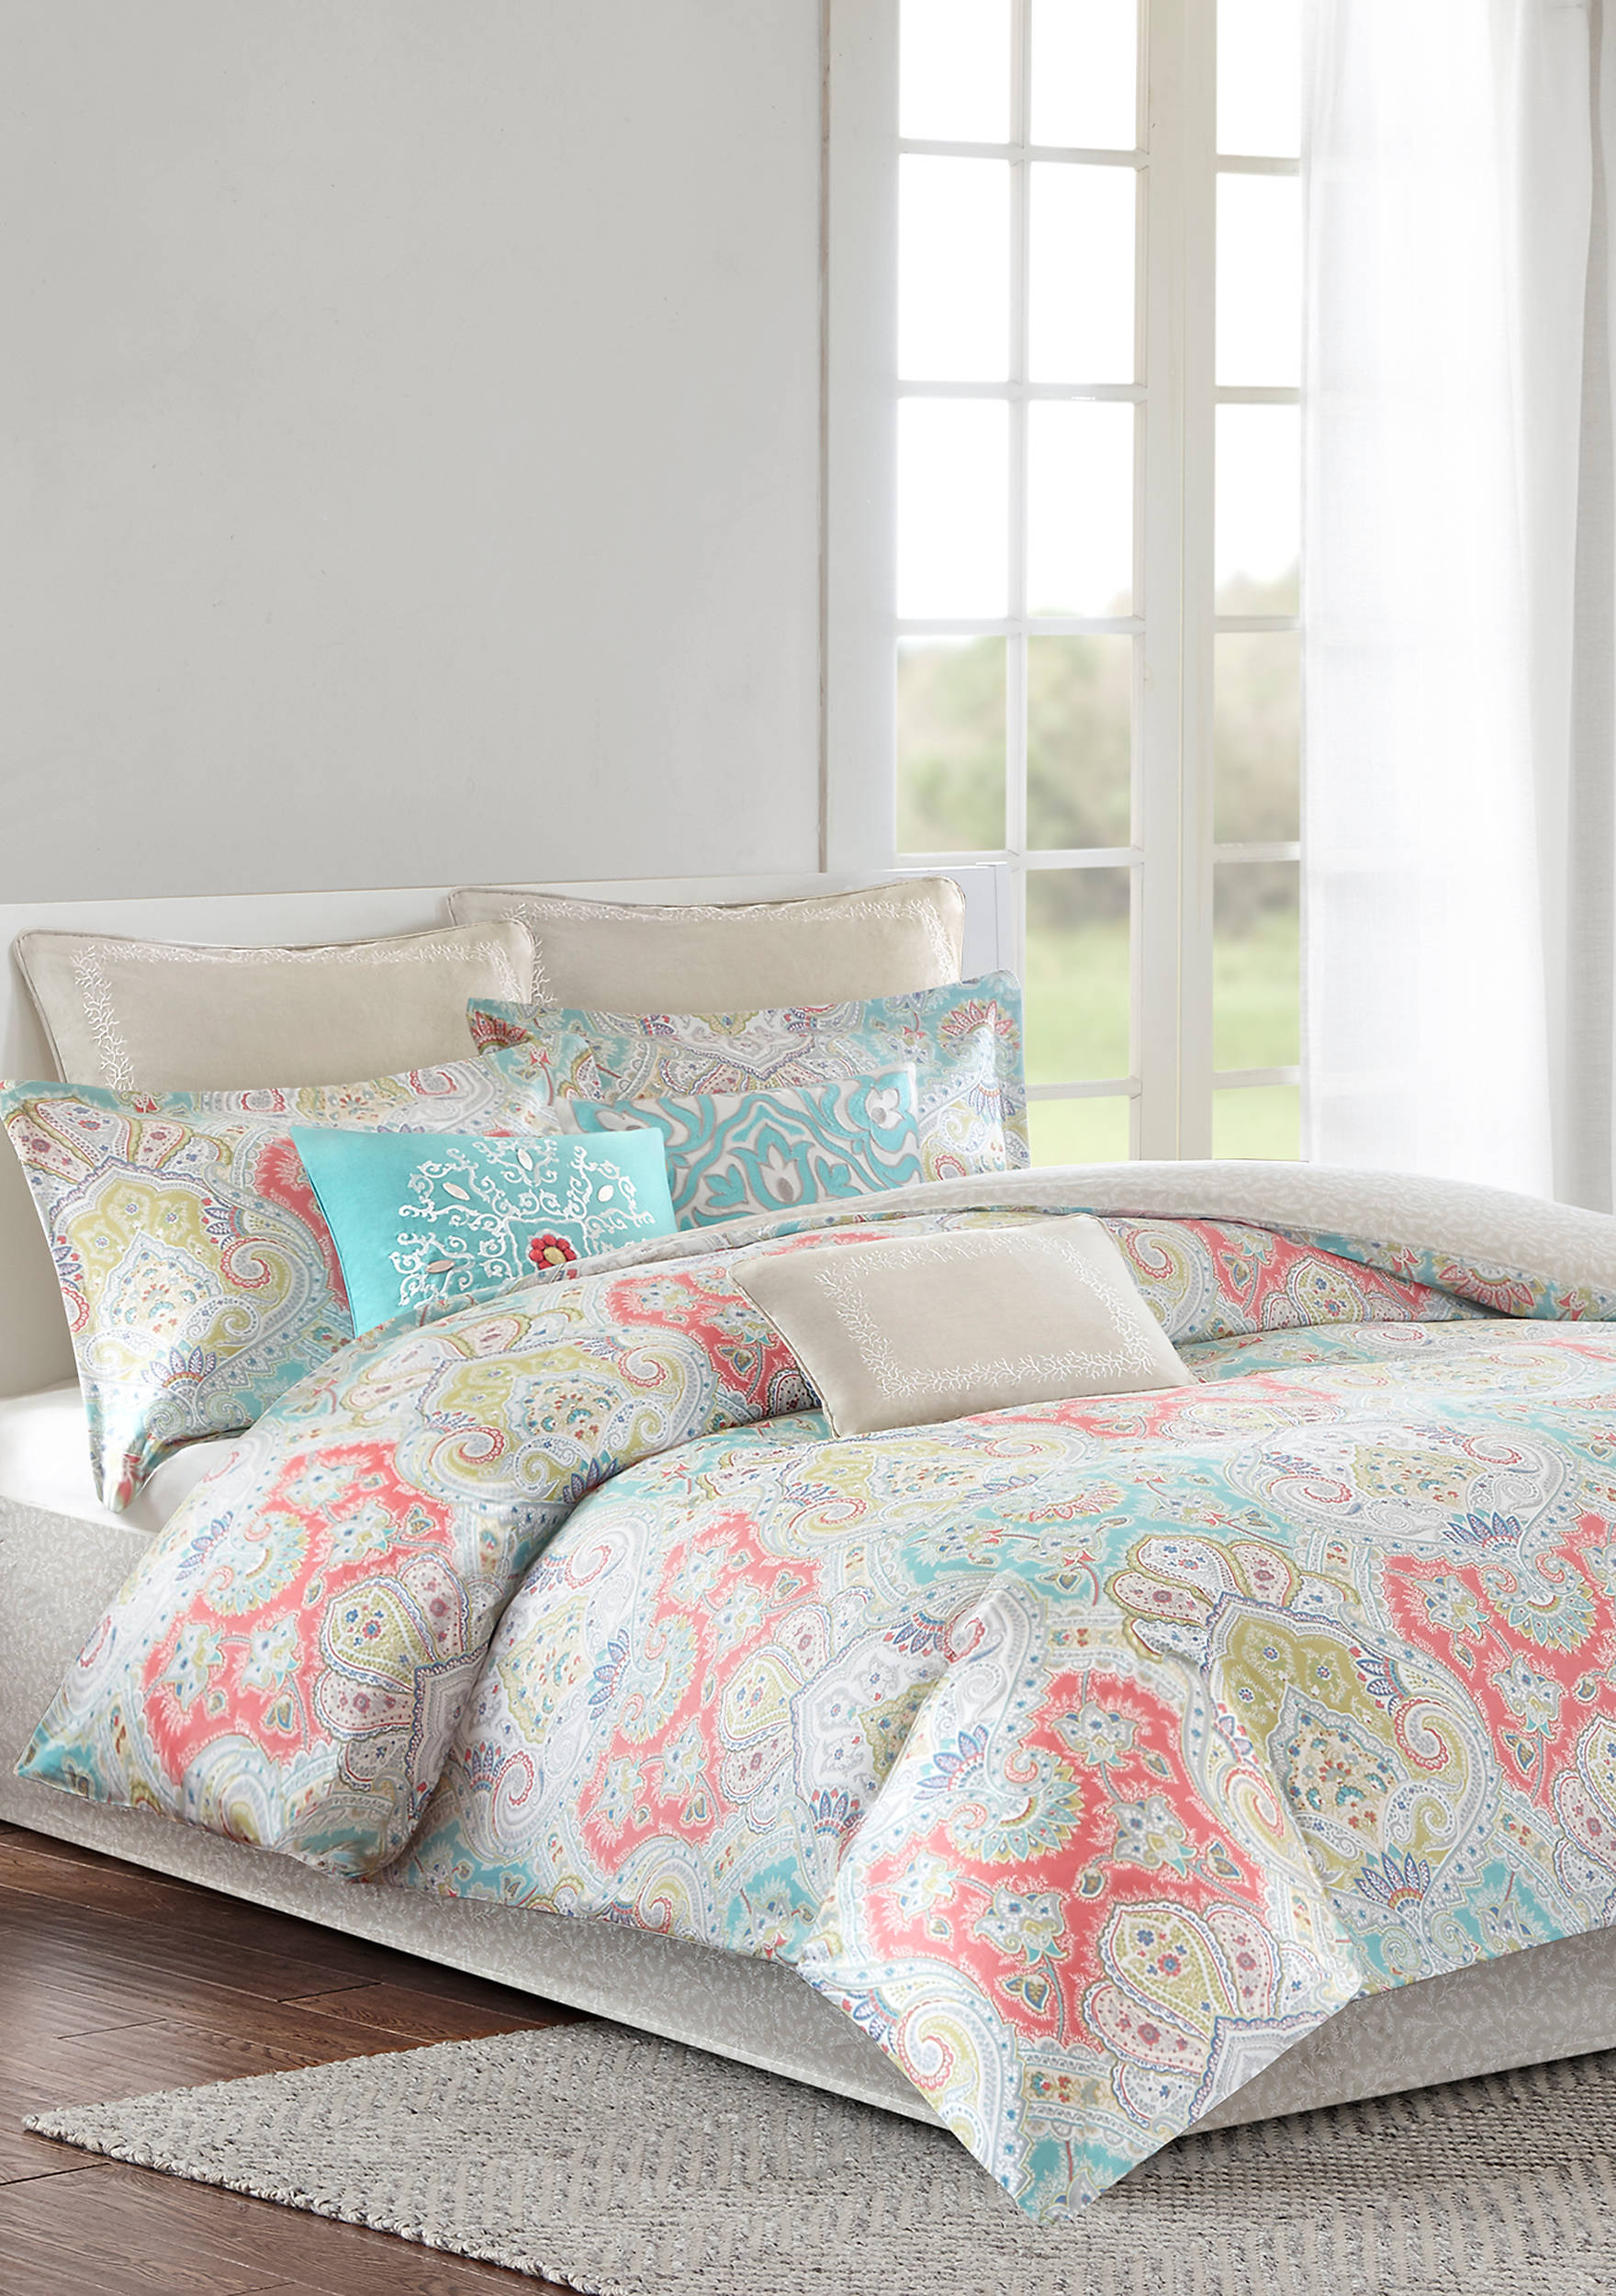 free echo shipping design juneau overstock cotton bedding bath bed product comforter today set